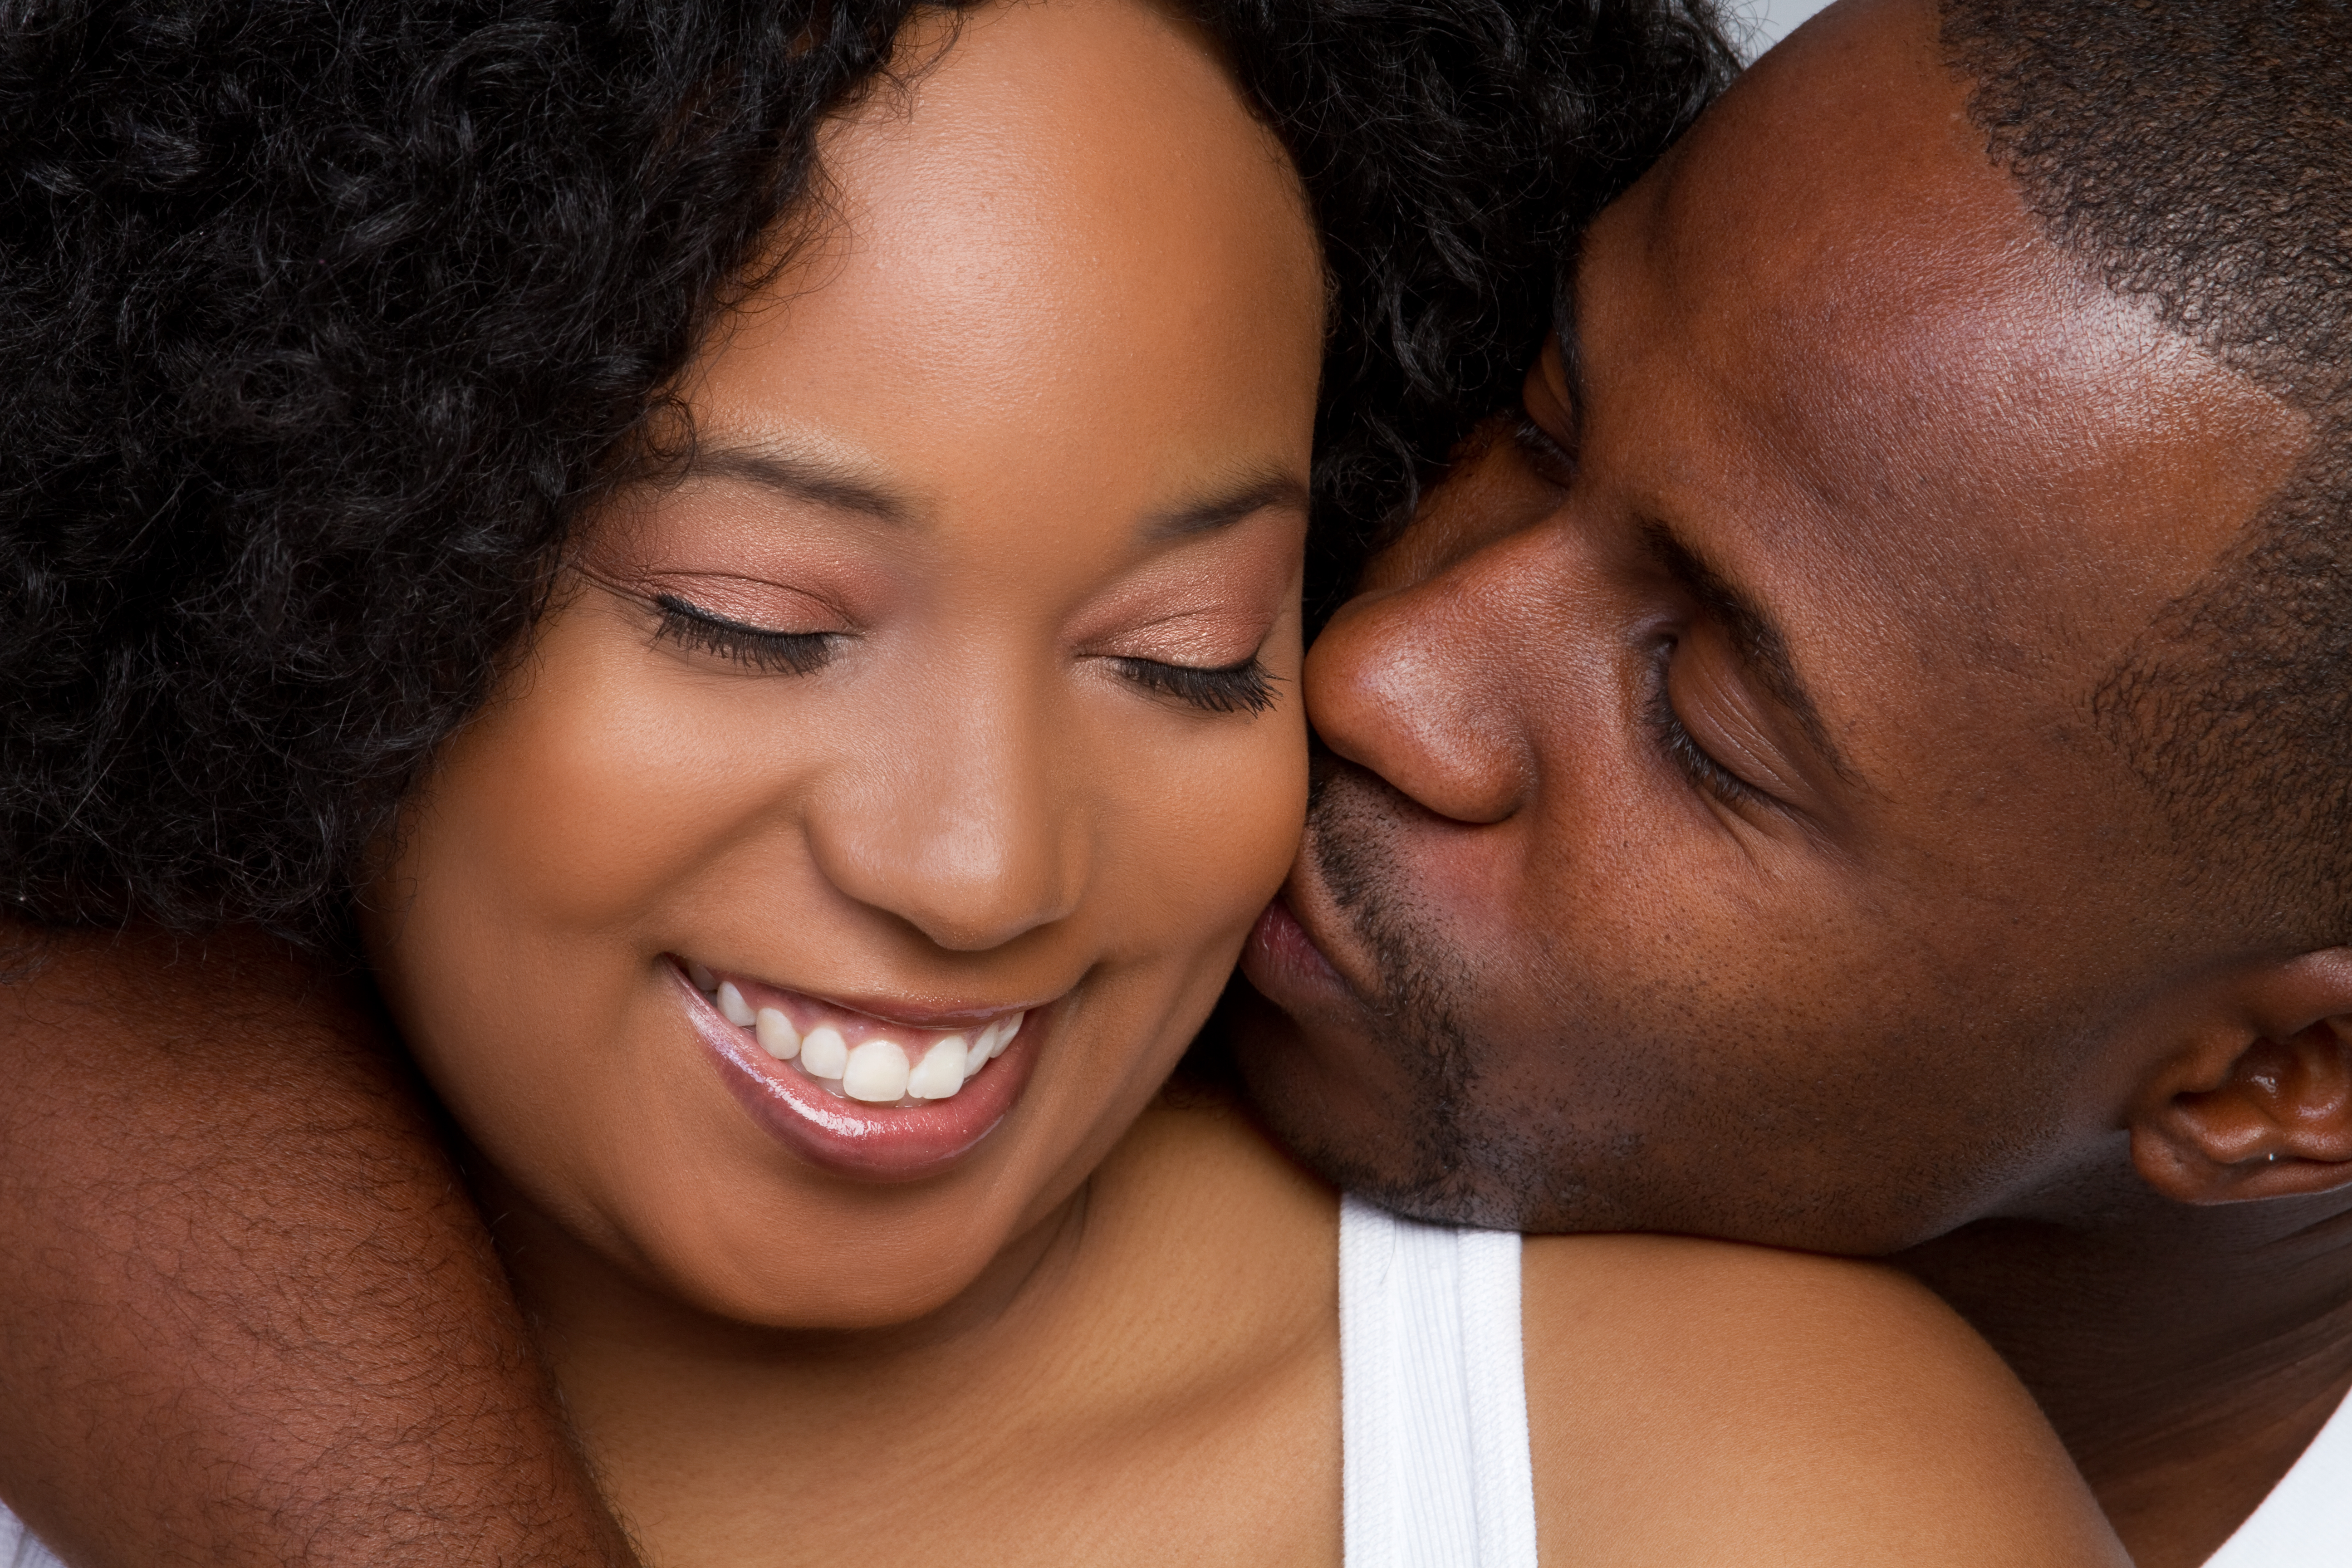 How to be an amazing partner in a relationship.